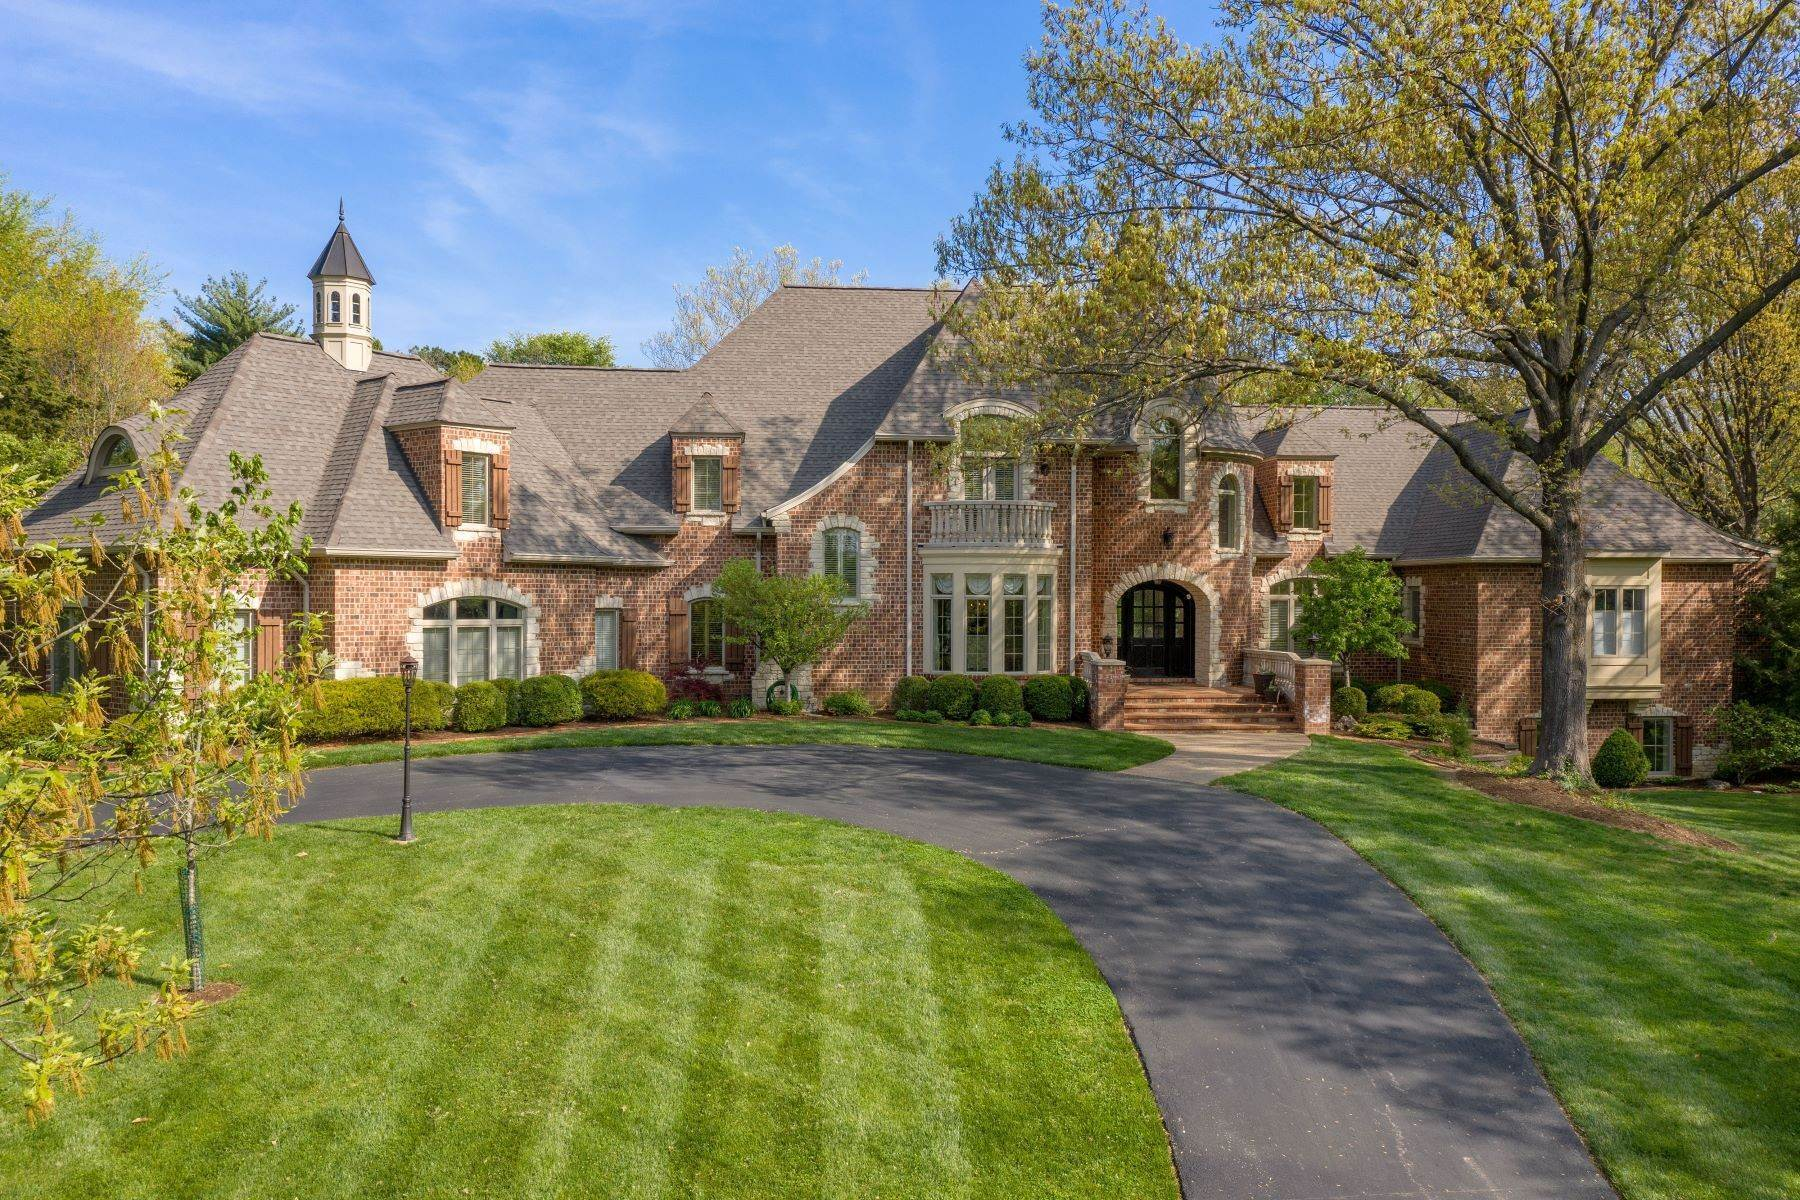 Single Family Homes for Sale at Exclusive Ladue Offering 619 Haverford Road, Ladue, Missouri 63124 United States